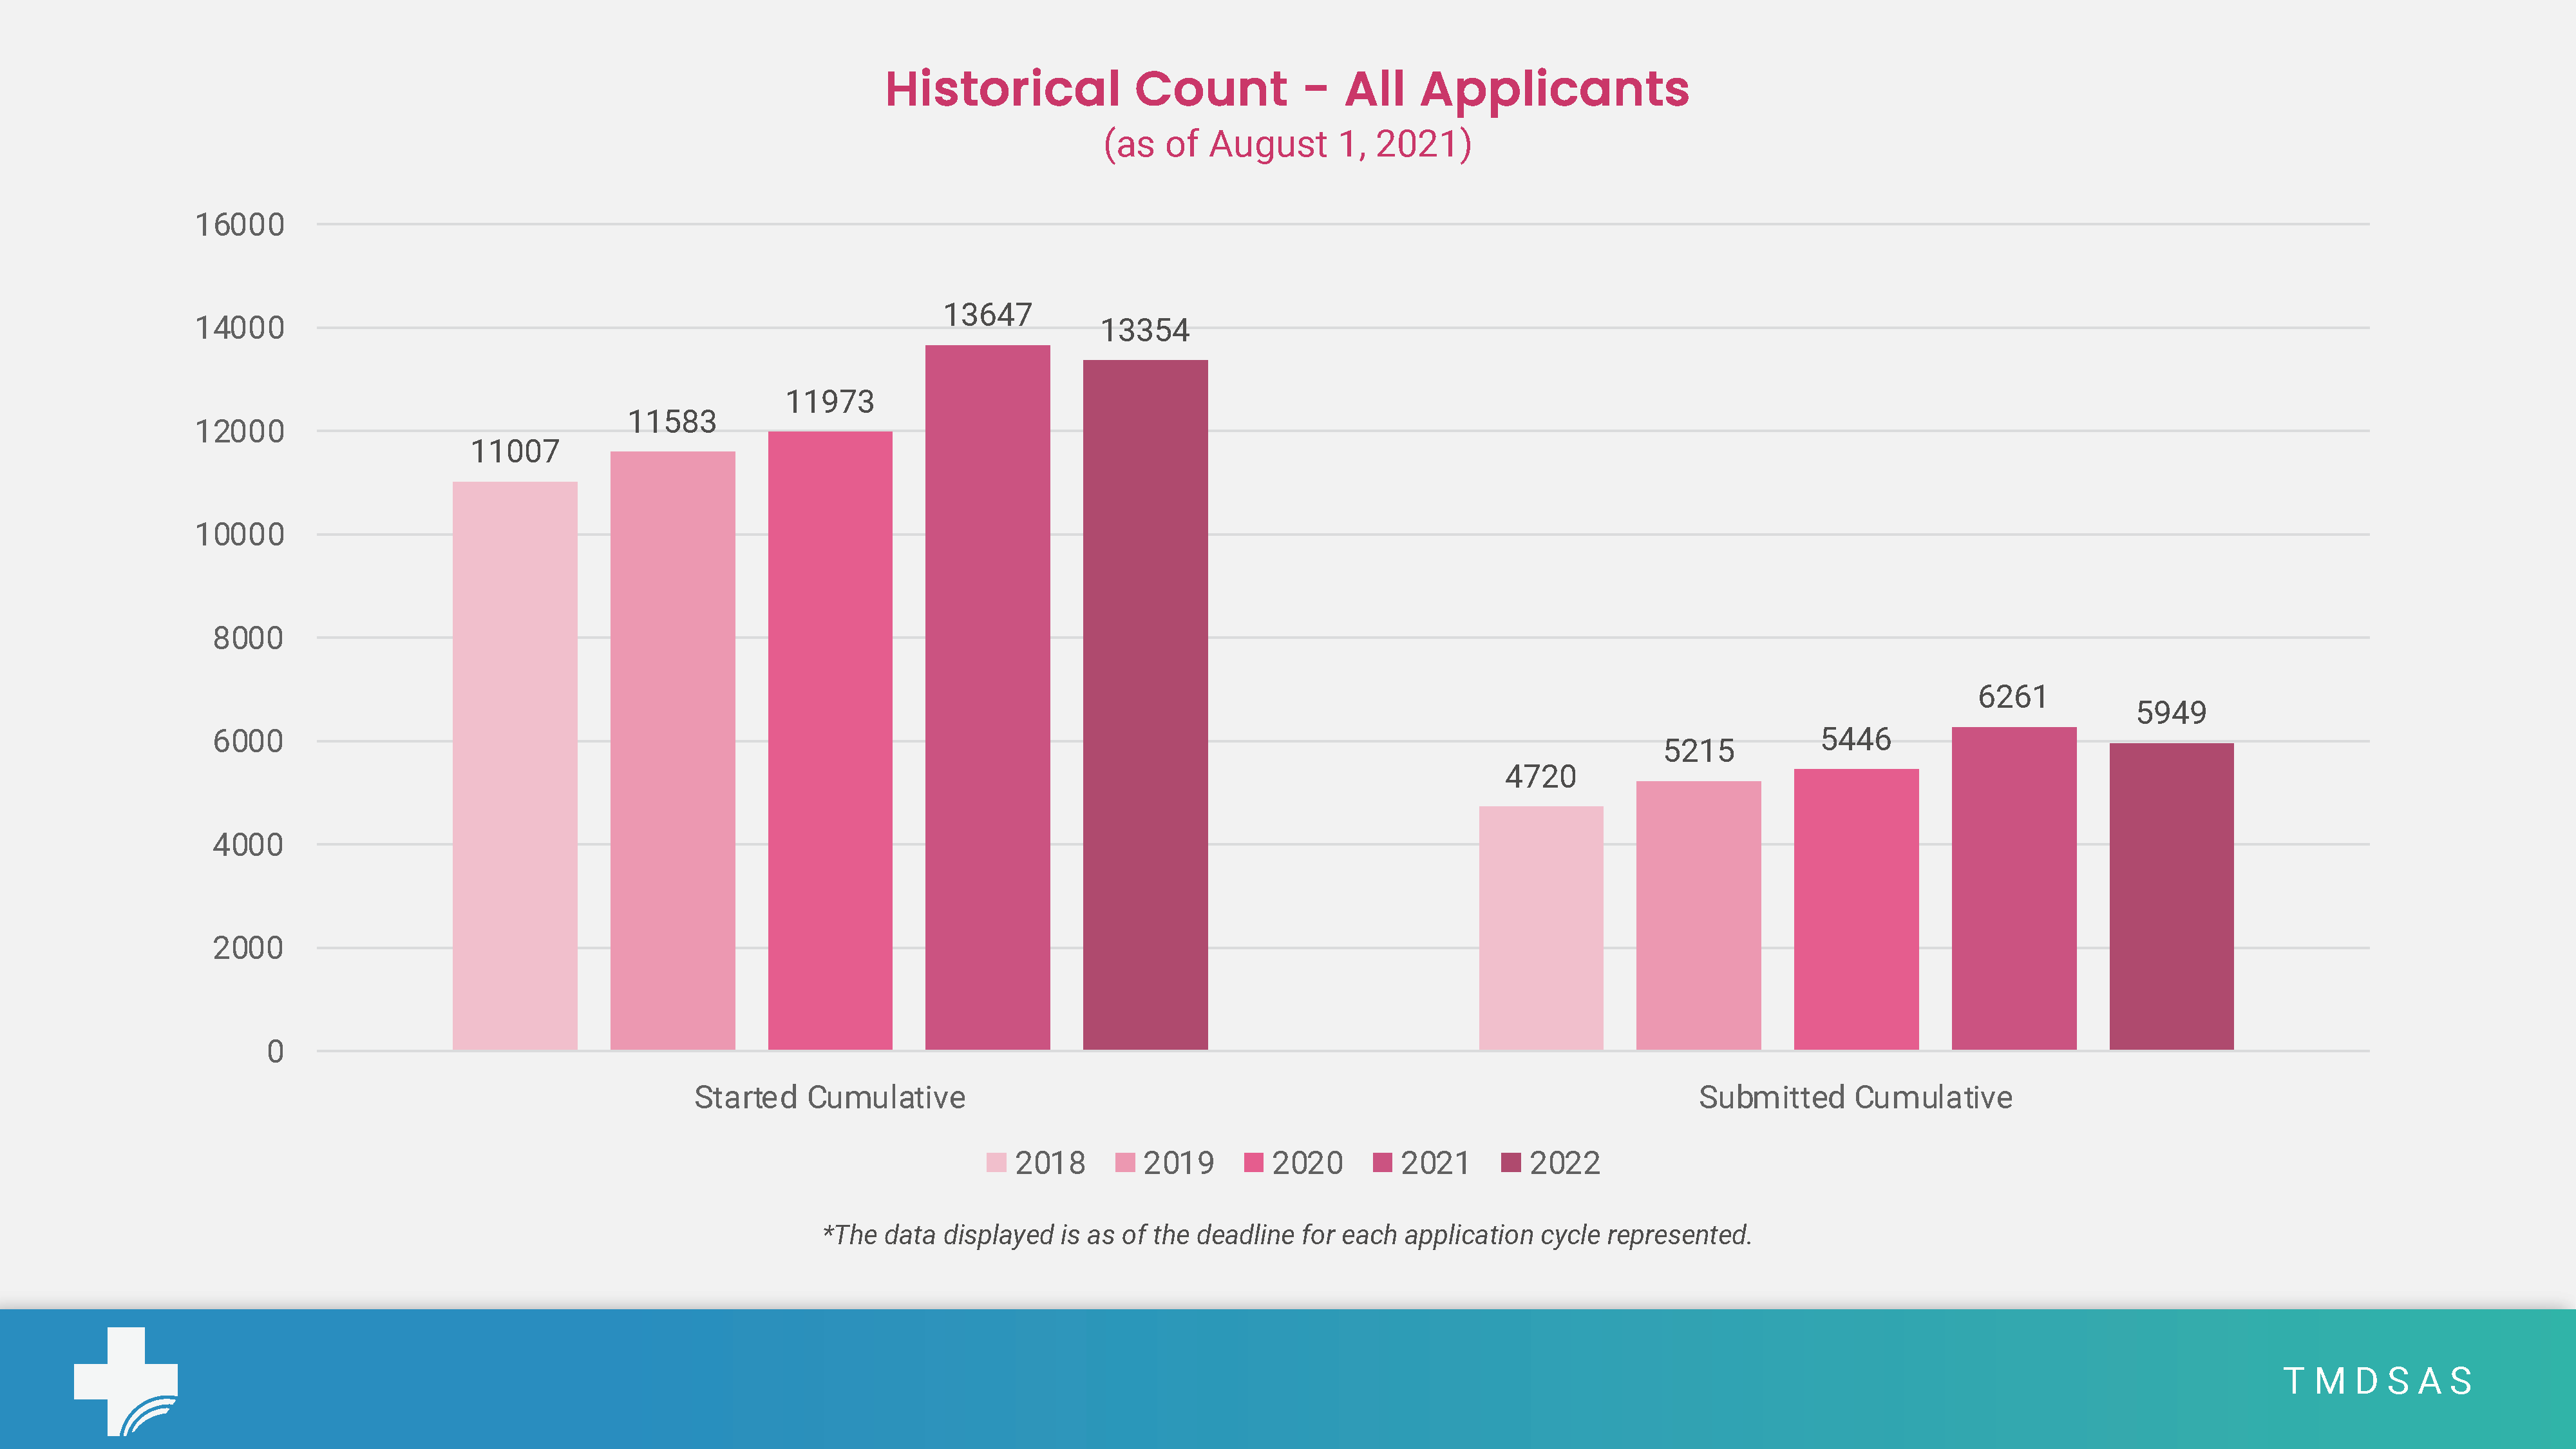 Total Application Numbers for August 2021